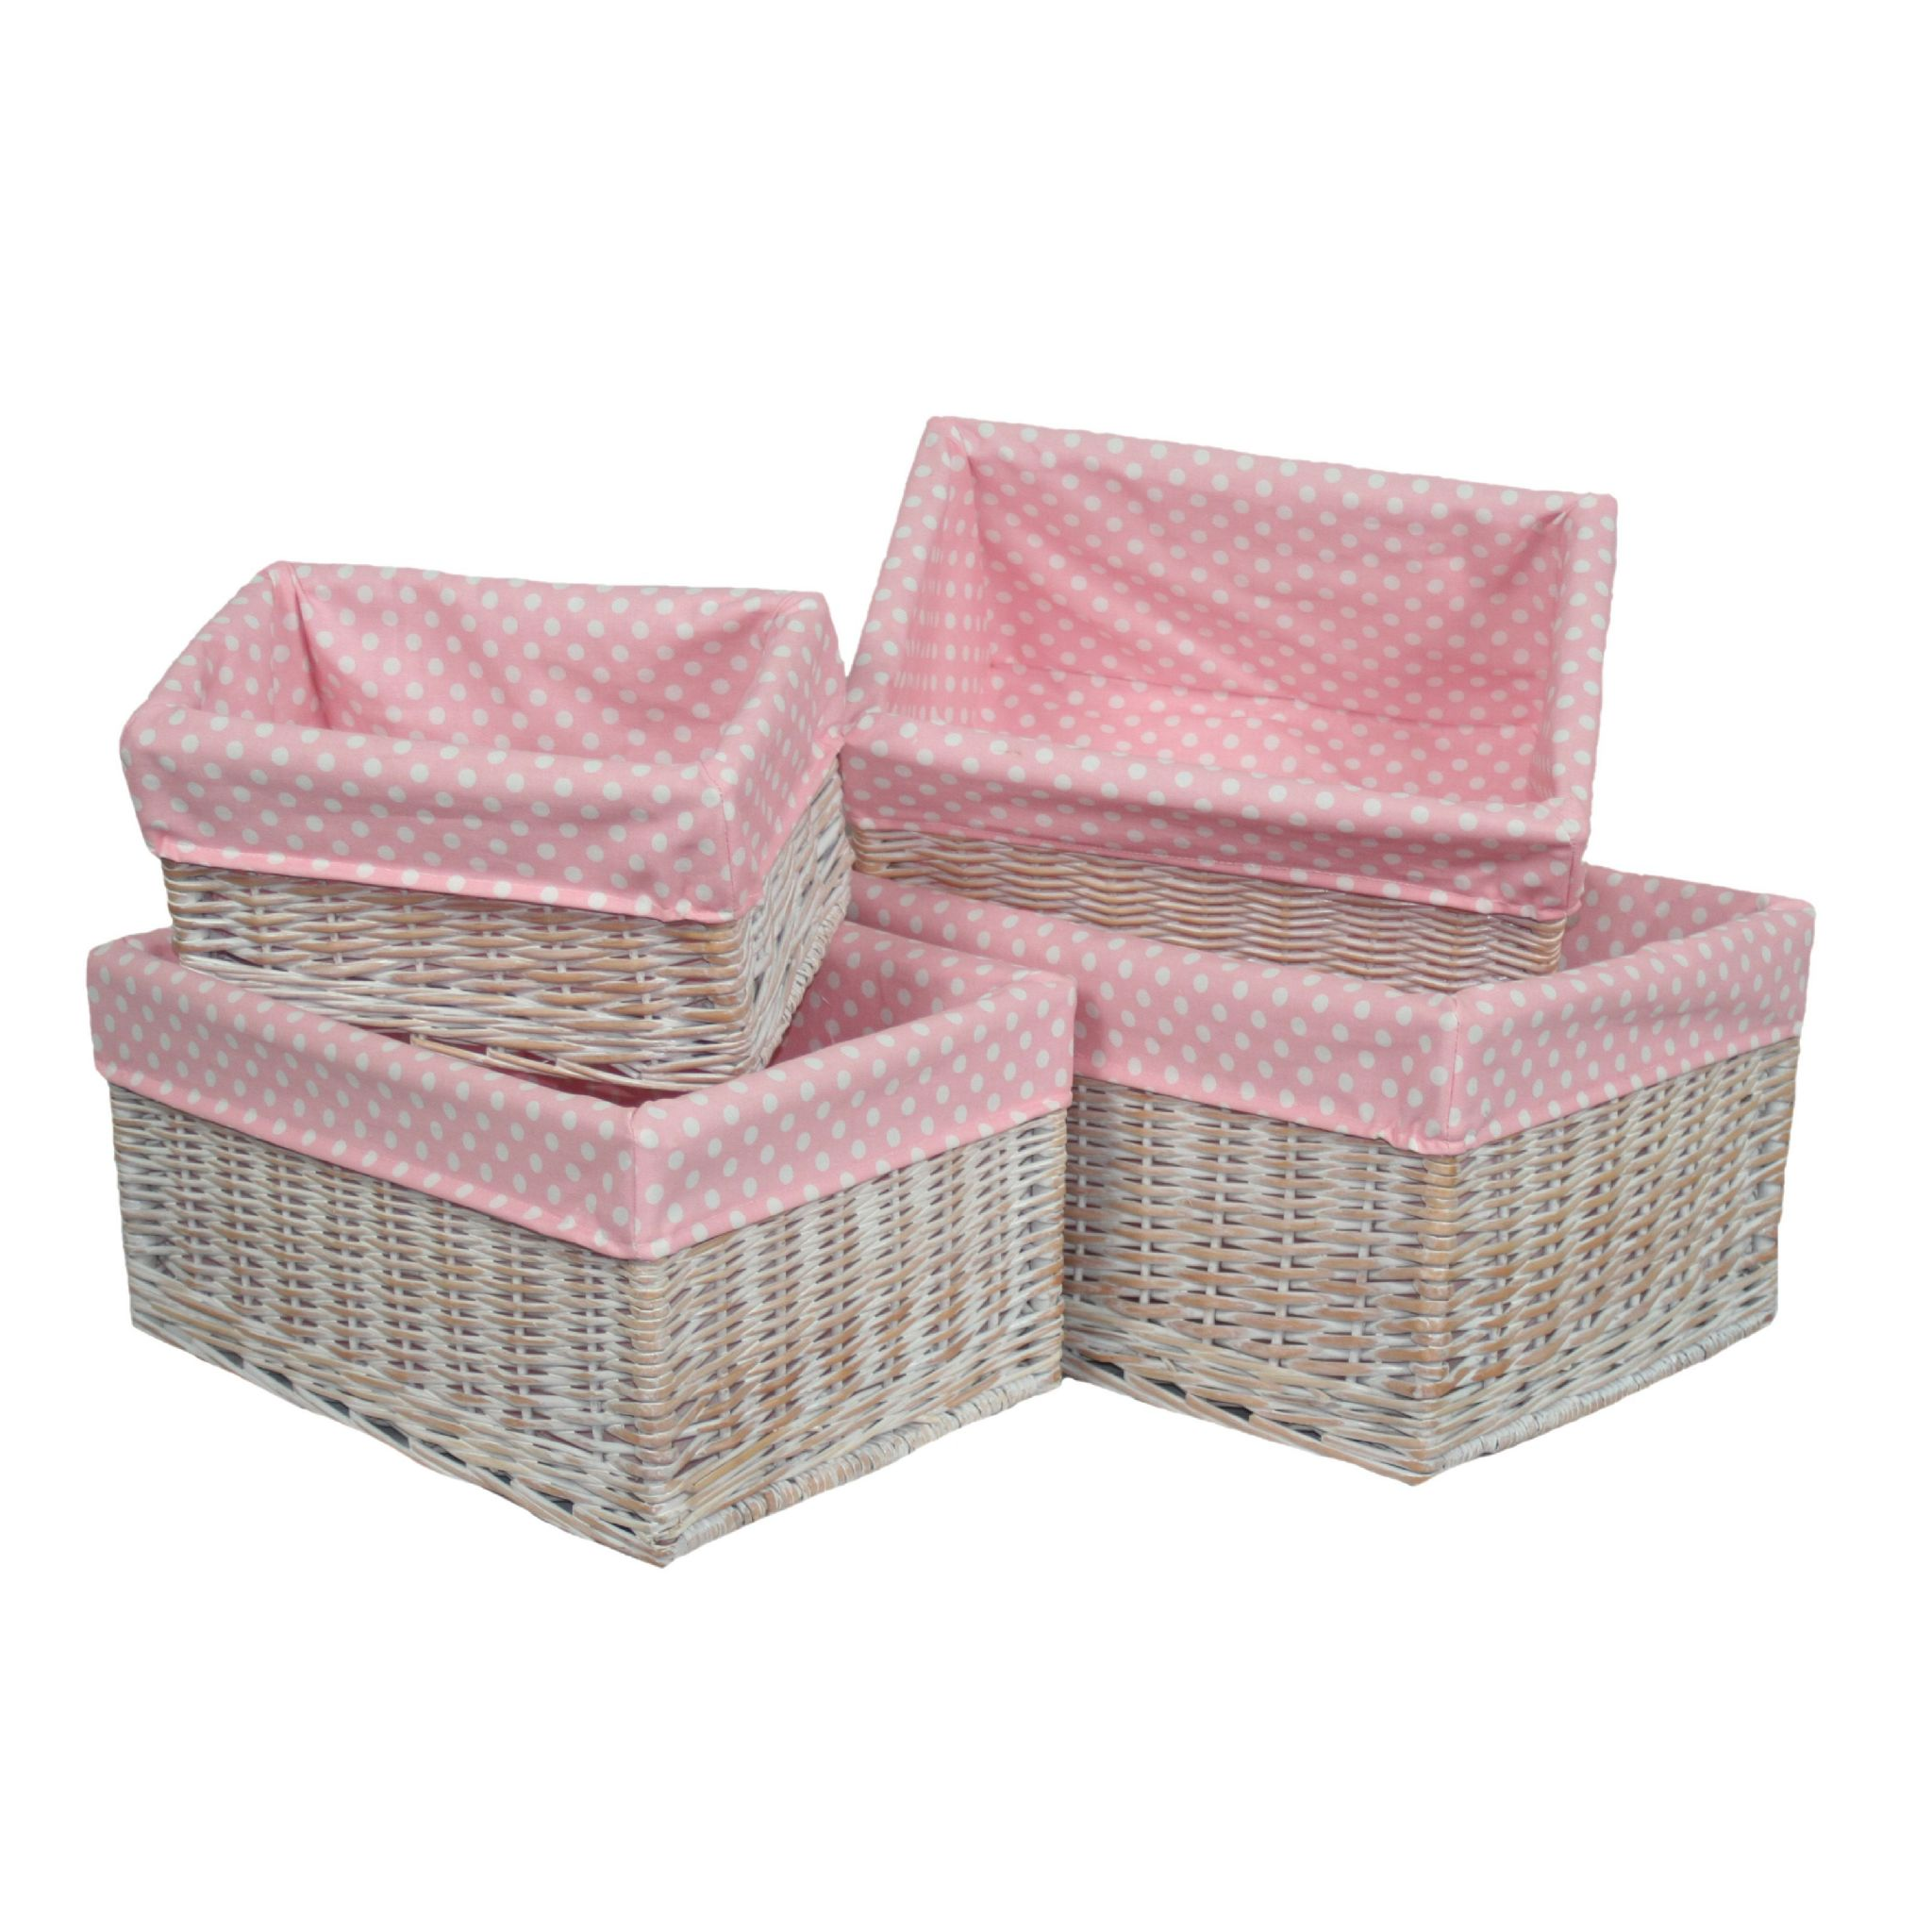 New England 4 Pink Lined White Wicker Baskets